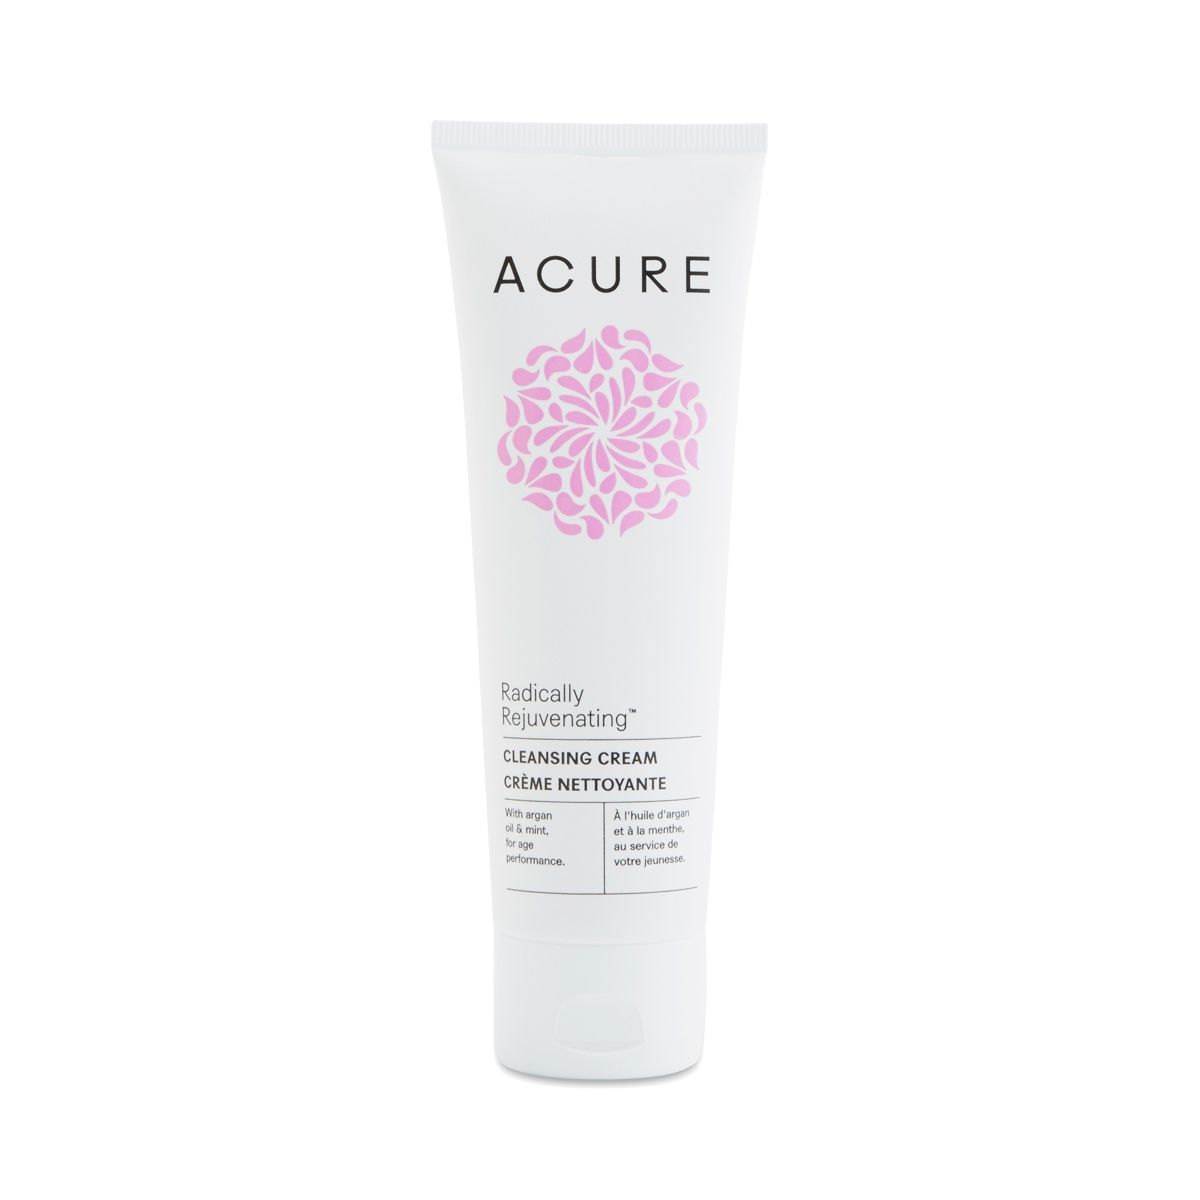 Acure Radically Rejuvenating Cleansing Cream 4 Oz Tube